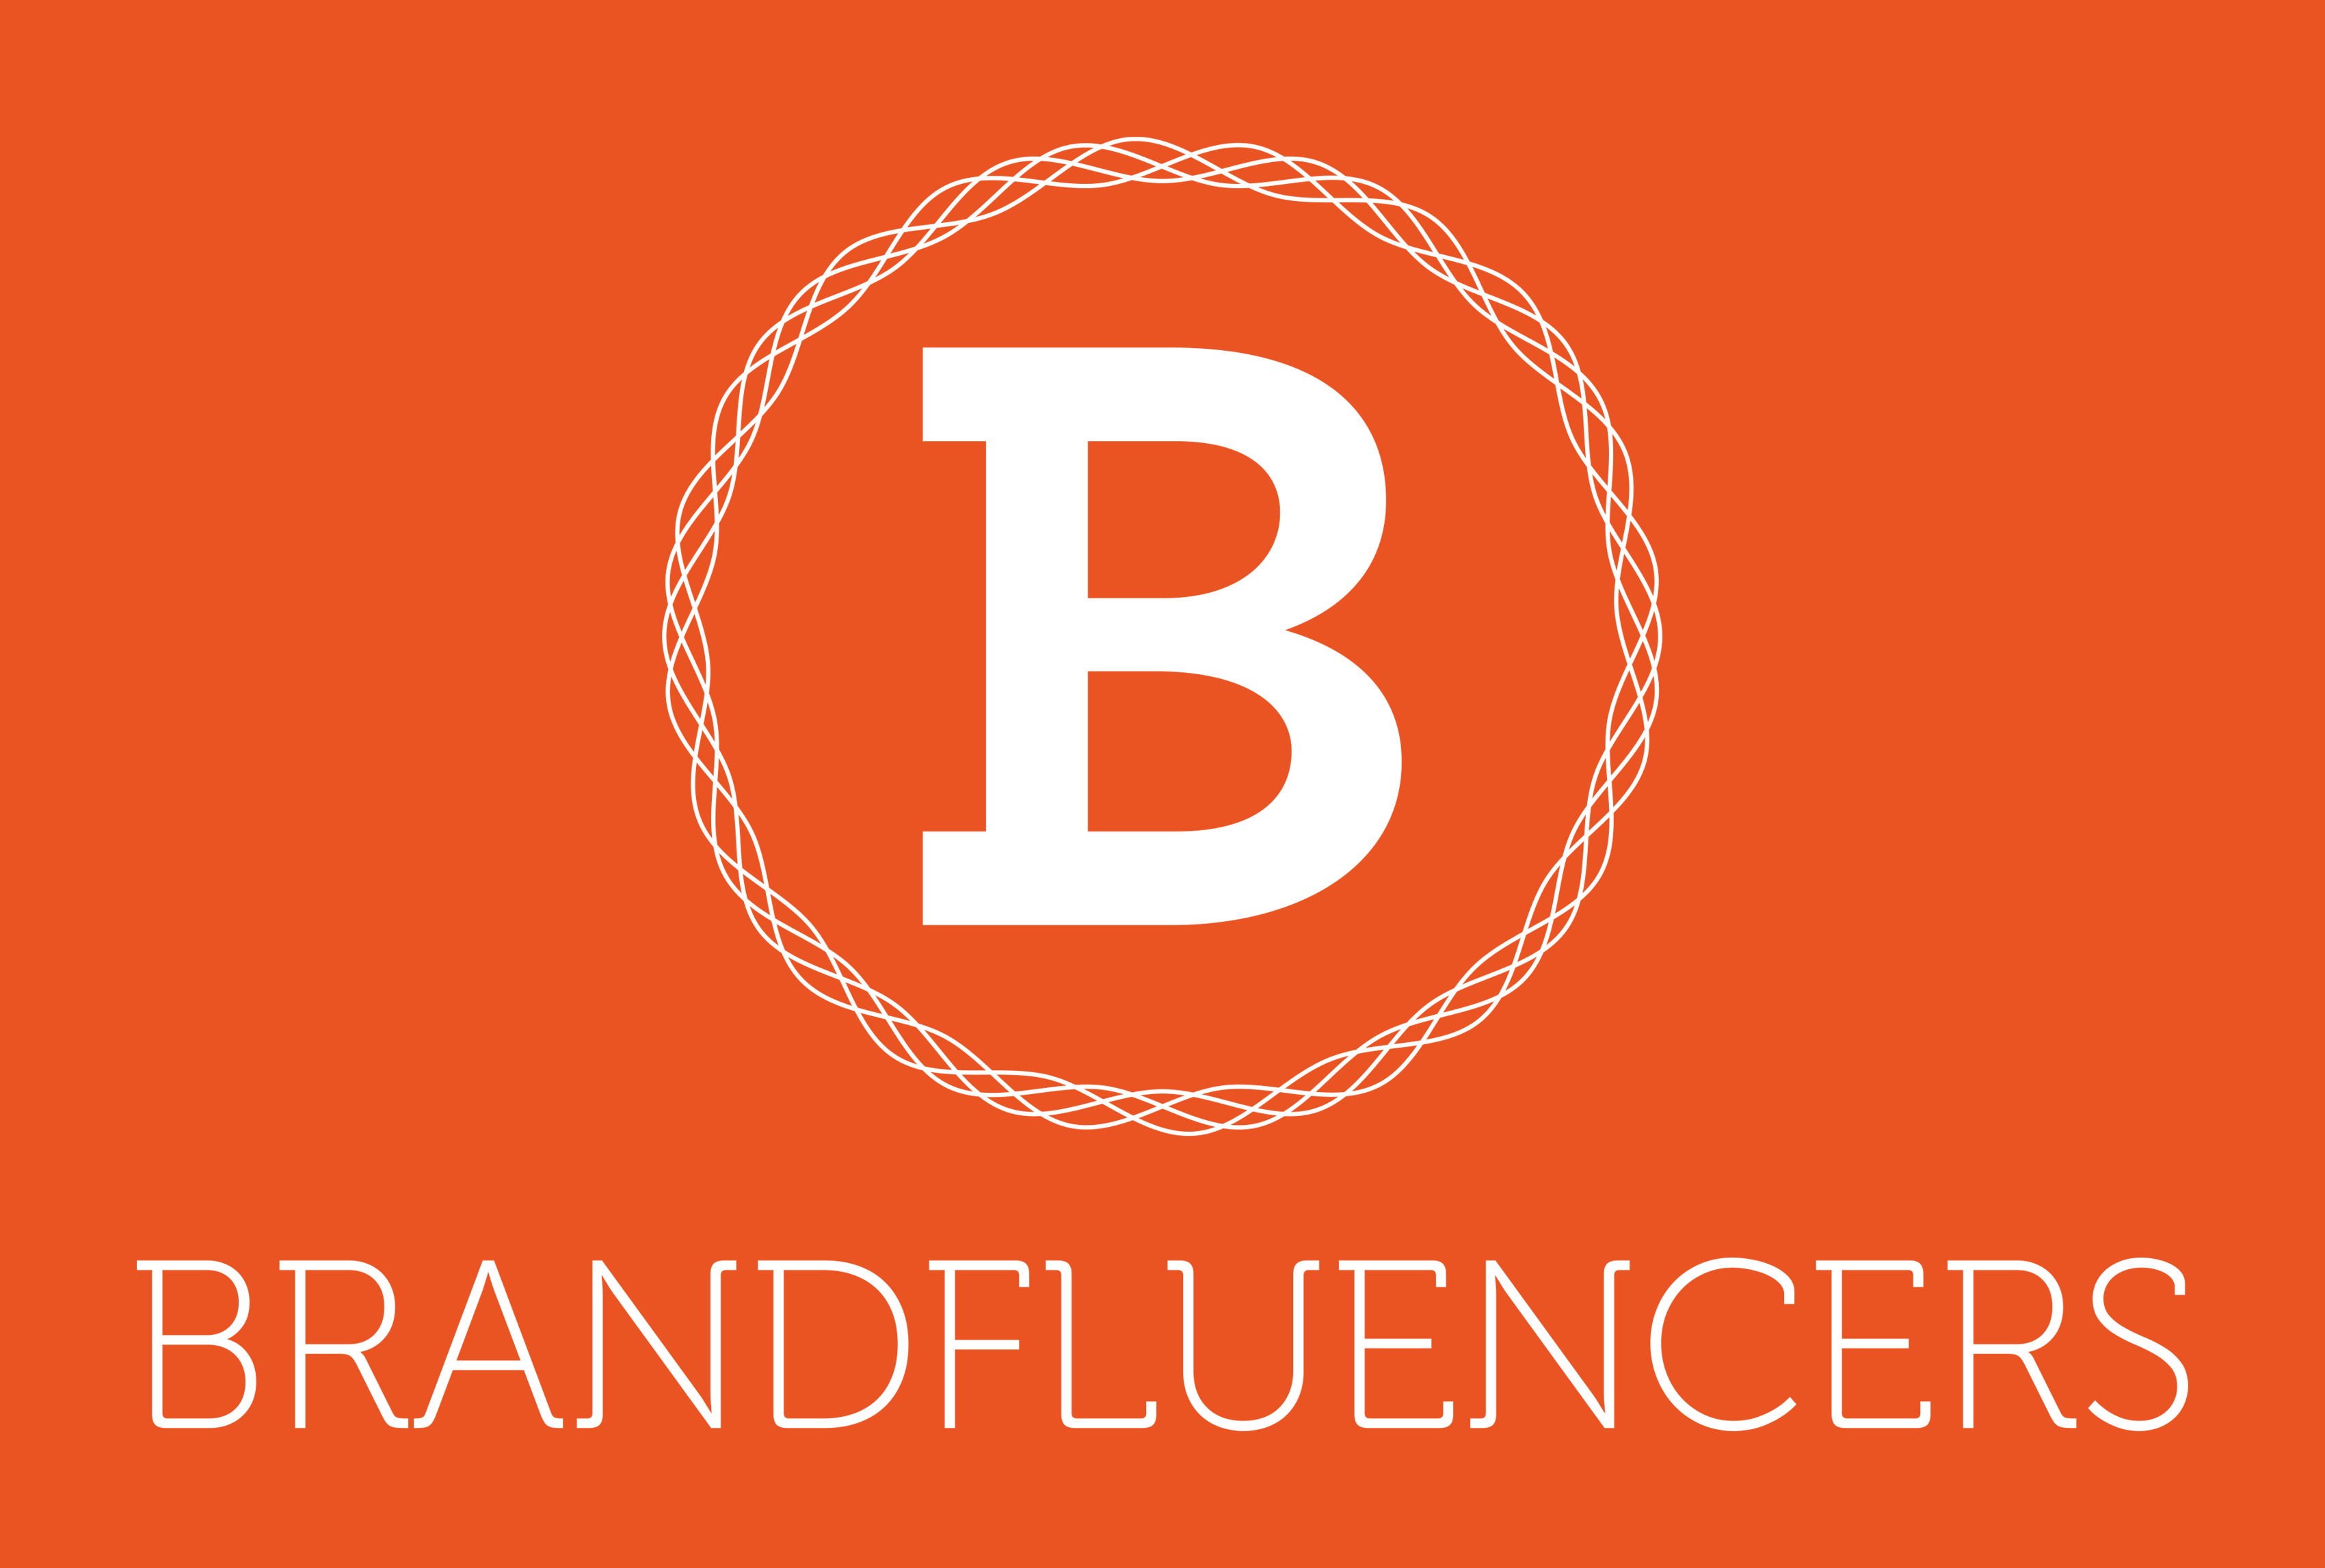 Brandfluencers